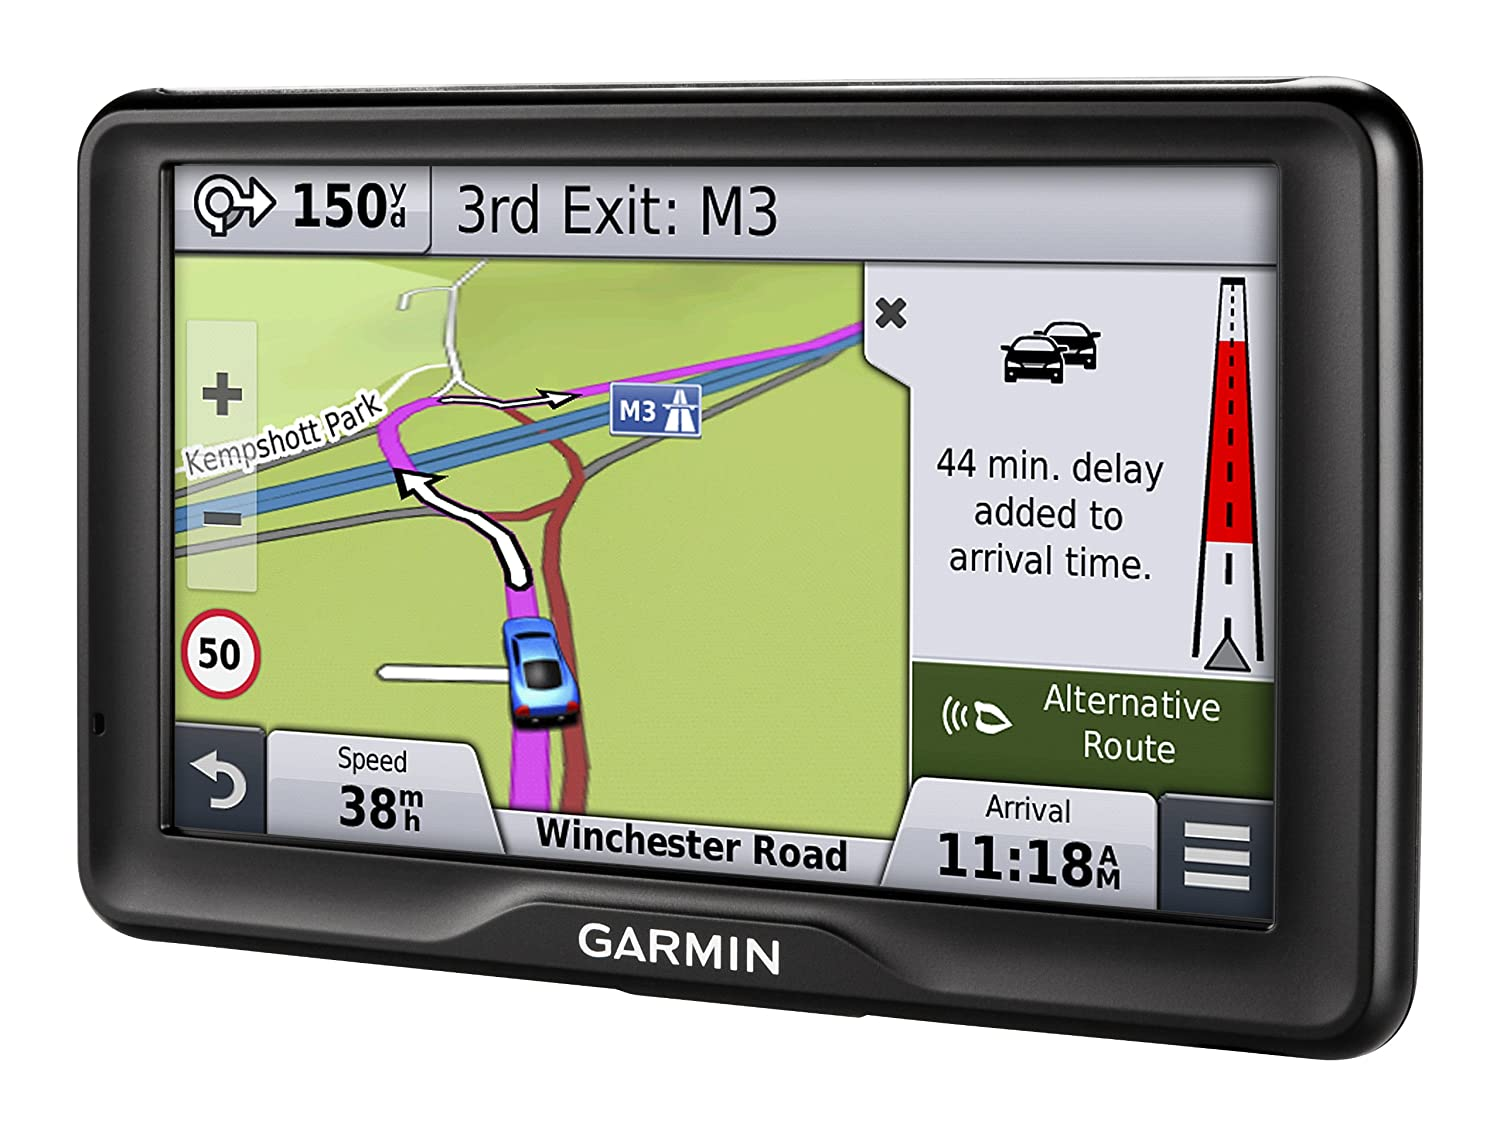 Garmin Nuvi 2798LMT-D 7 inch Satellite Navigation with UK and Full Europe  Maps, Free Lifetime Map Updates, Free Lifetime Digital Traffic Alerts and